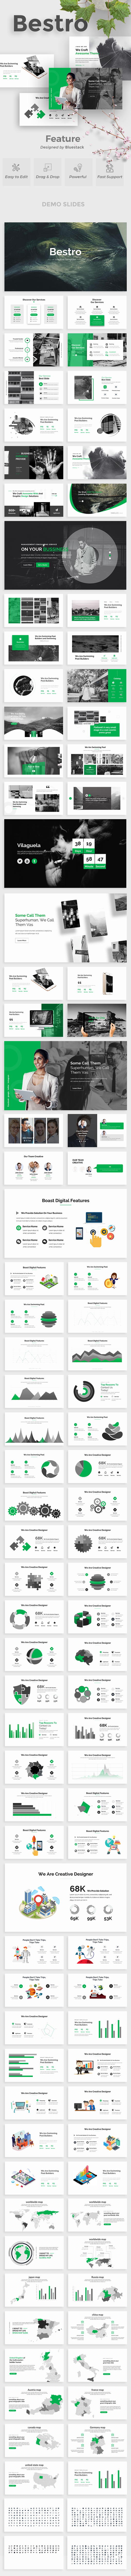 Bestro Creative Powerpoint Template - Creative PowerPoint Templates